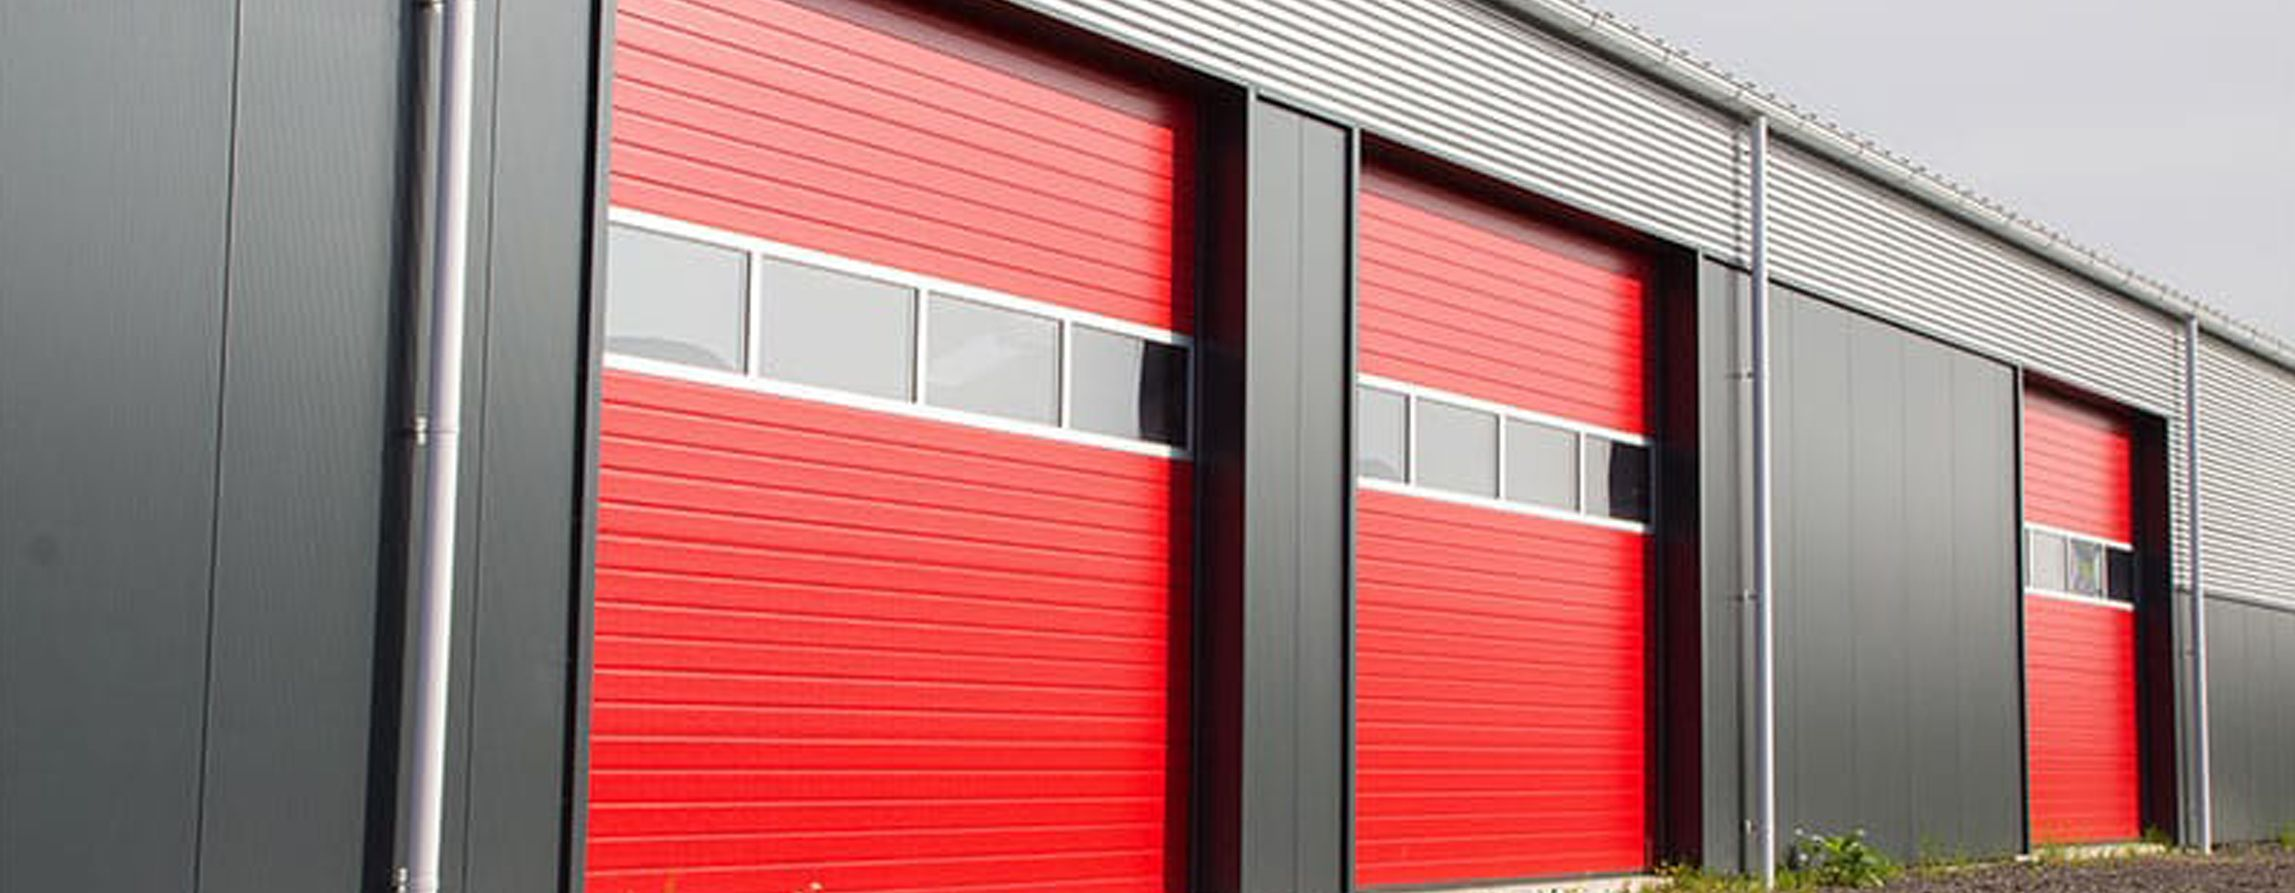 custom-commercial-garage-doors-phoenix-az